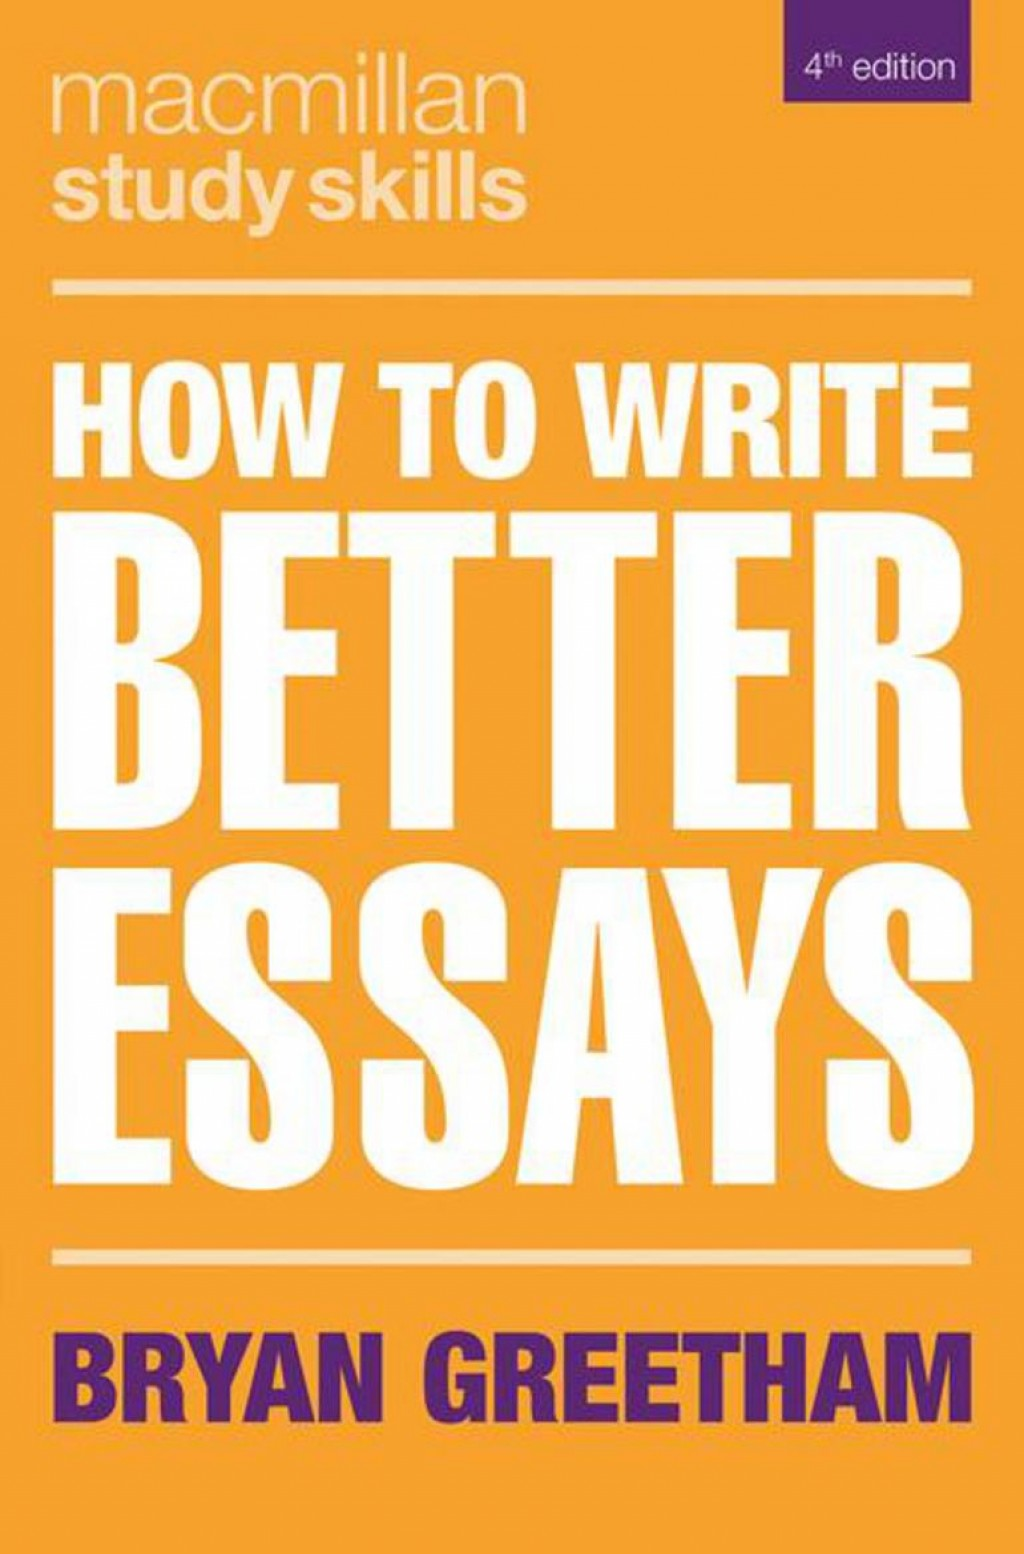 004 How To Write Better Essays Essay Awesome Can I In English Literature Greetham Large